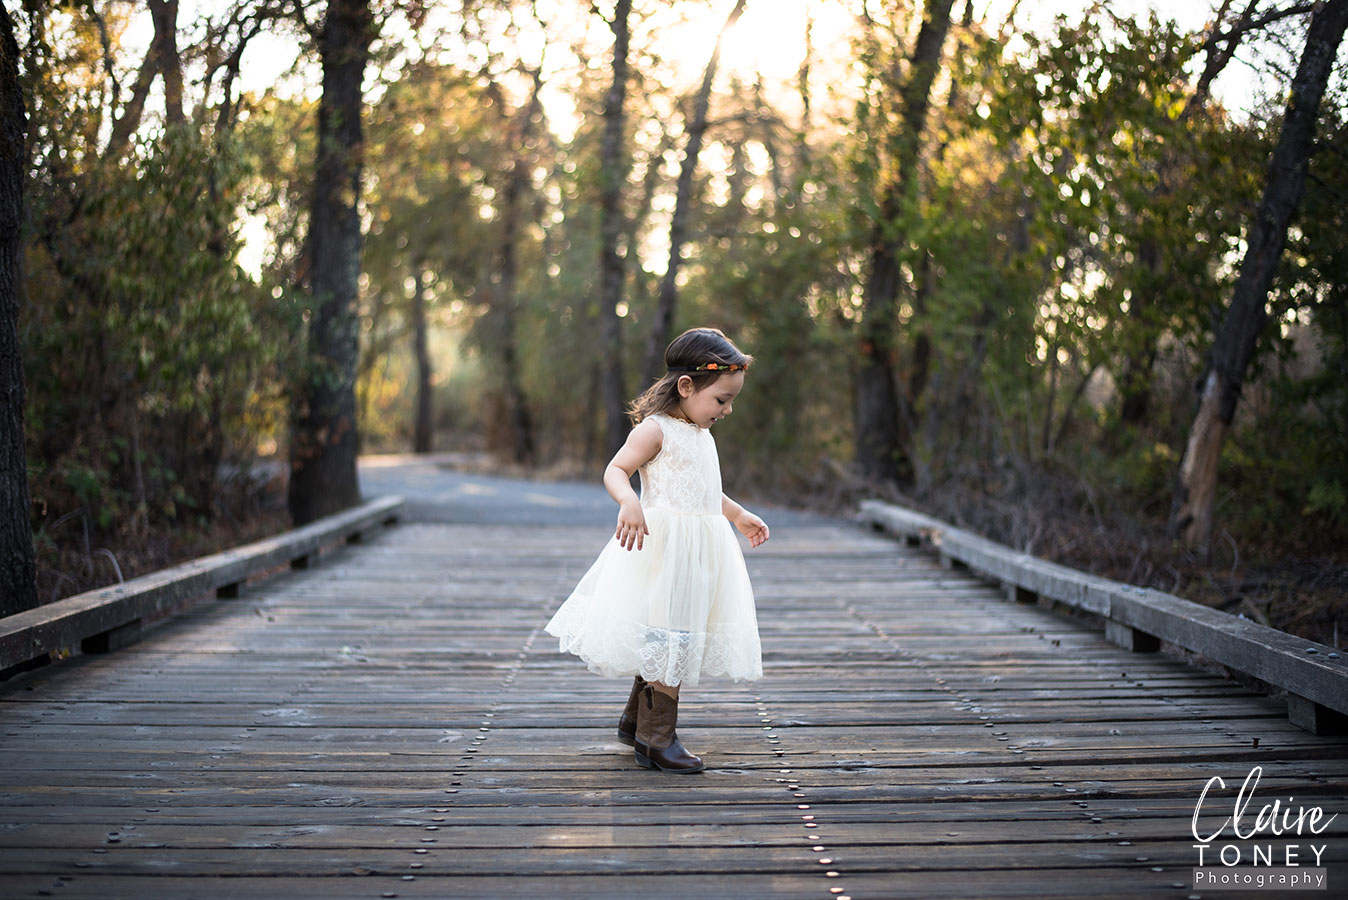 Little girl on a wooden platform wearing boots and a vintage styled dress.